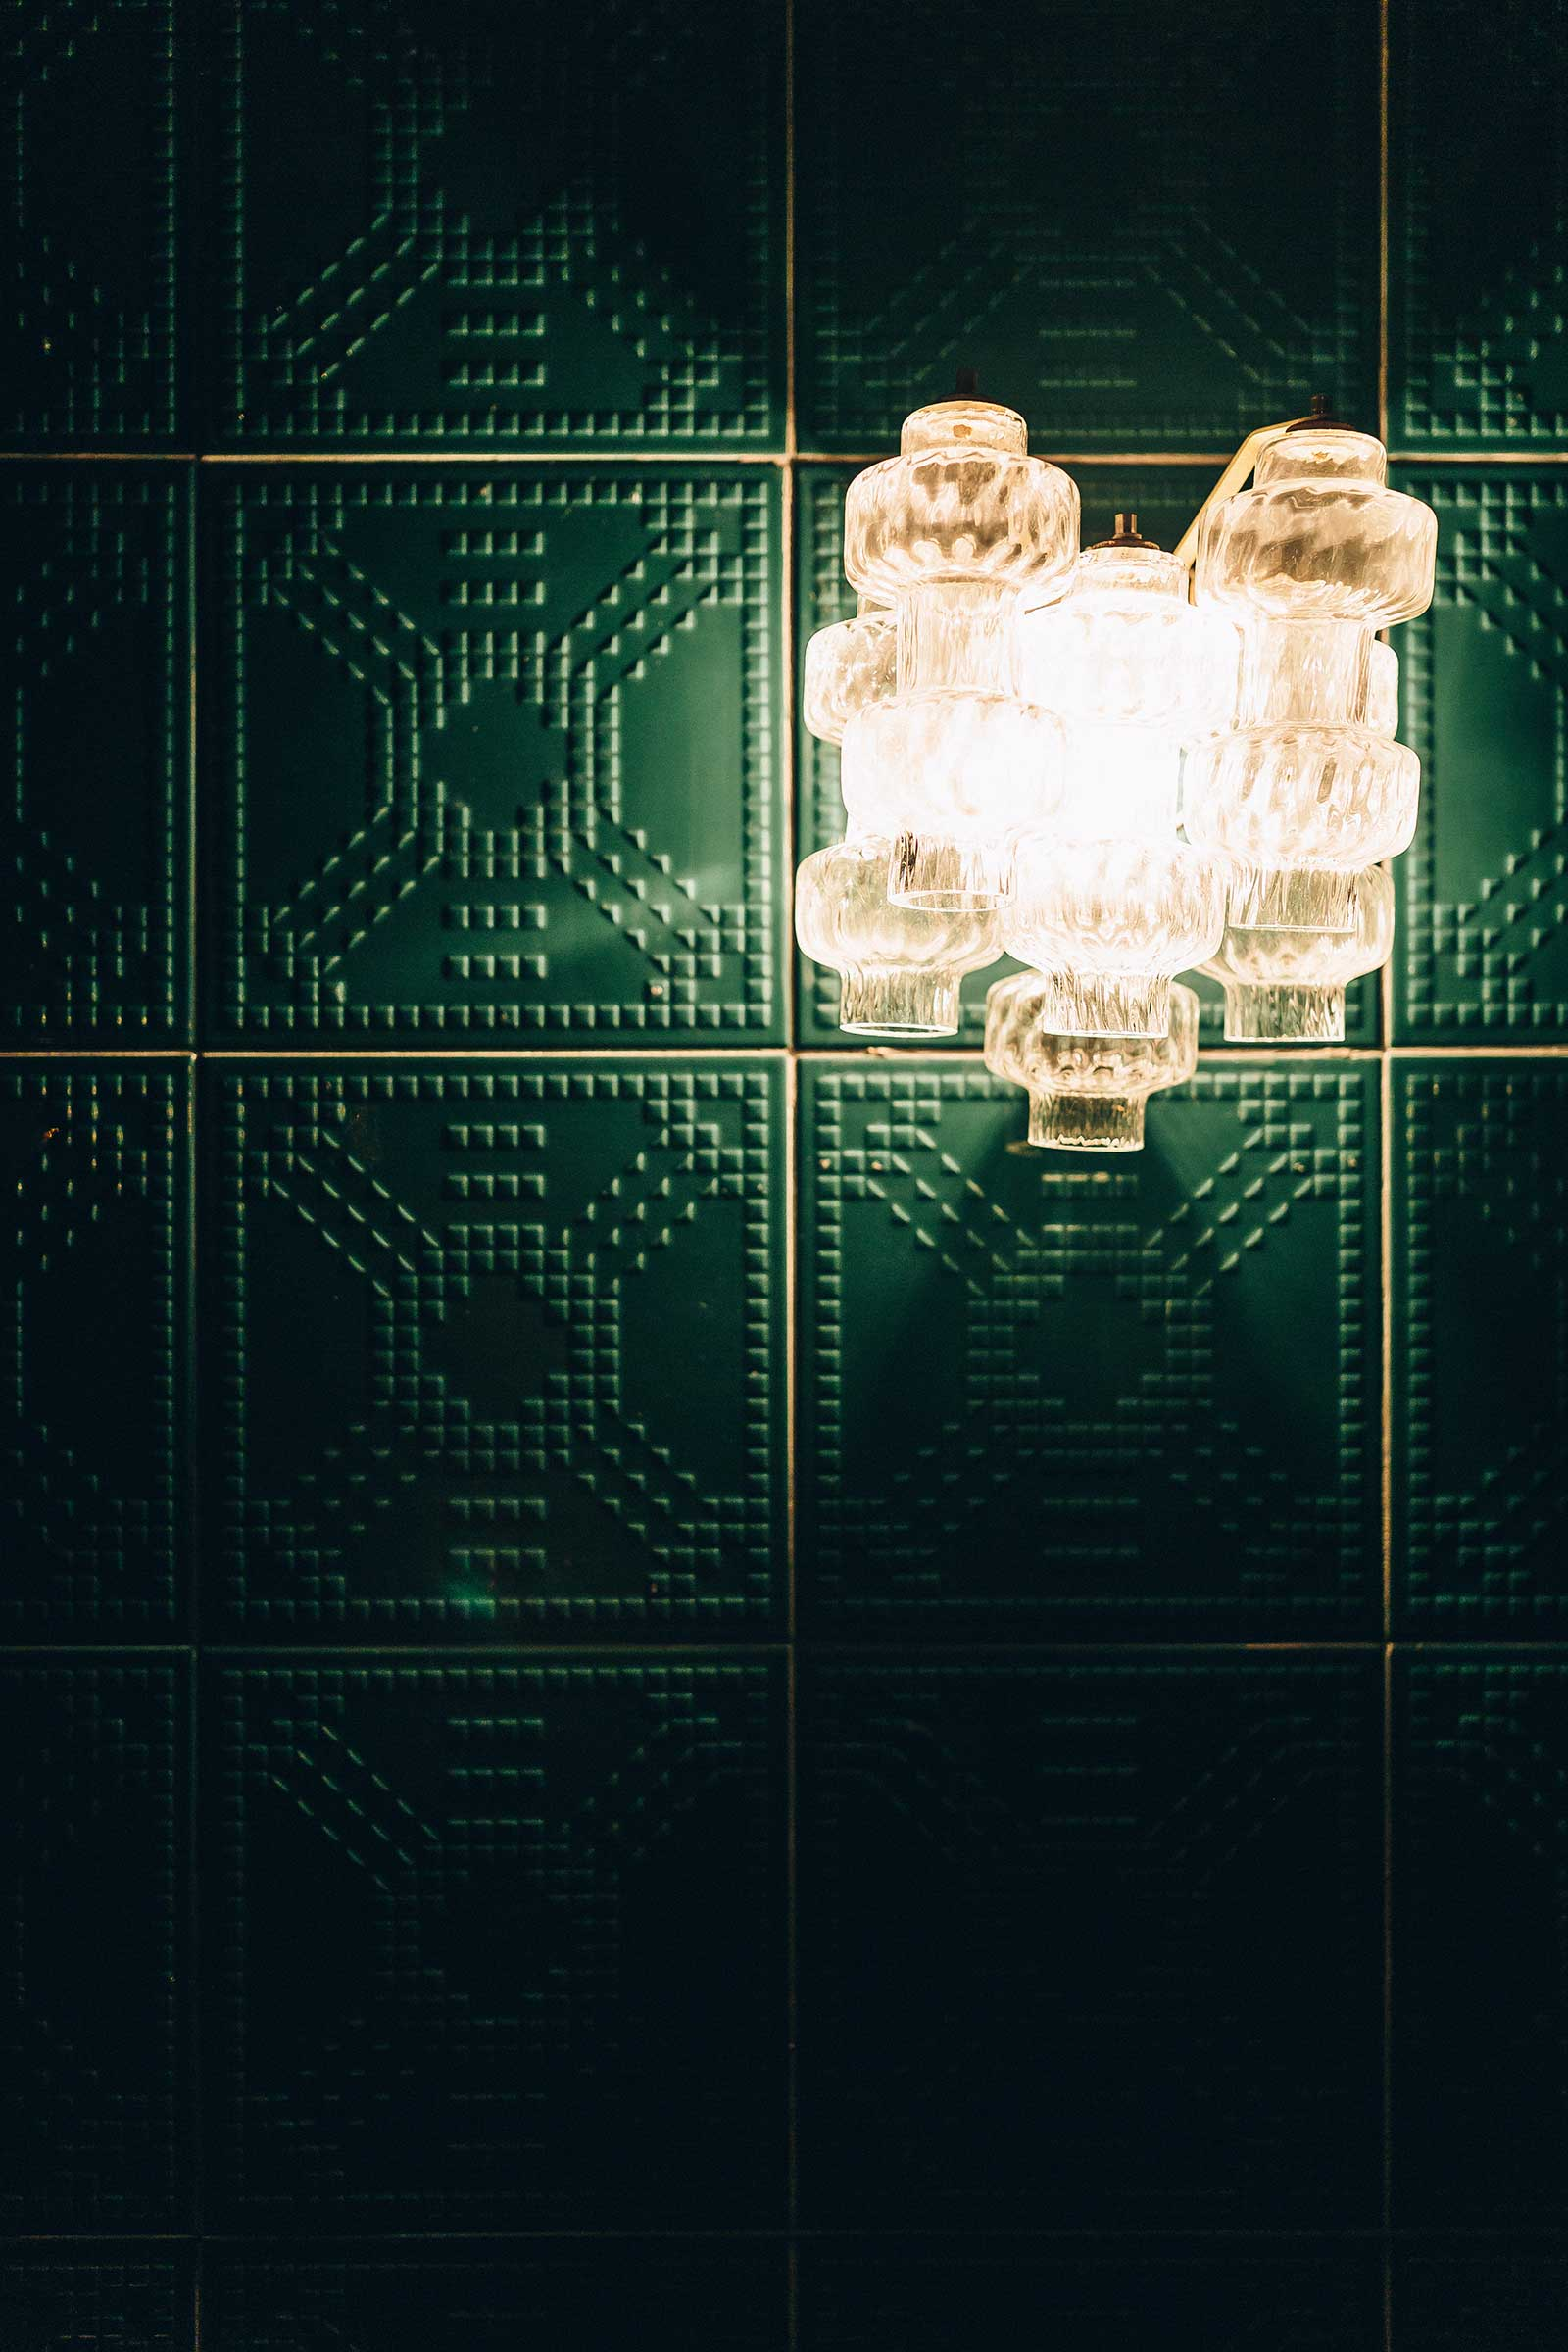 LOUISE_Wall-sconce-on-green-tiles.jpg